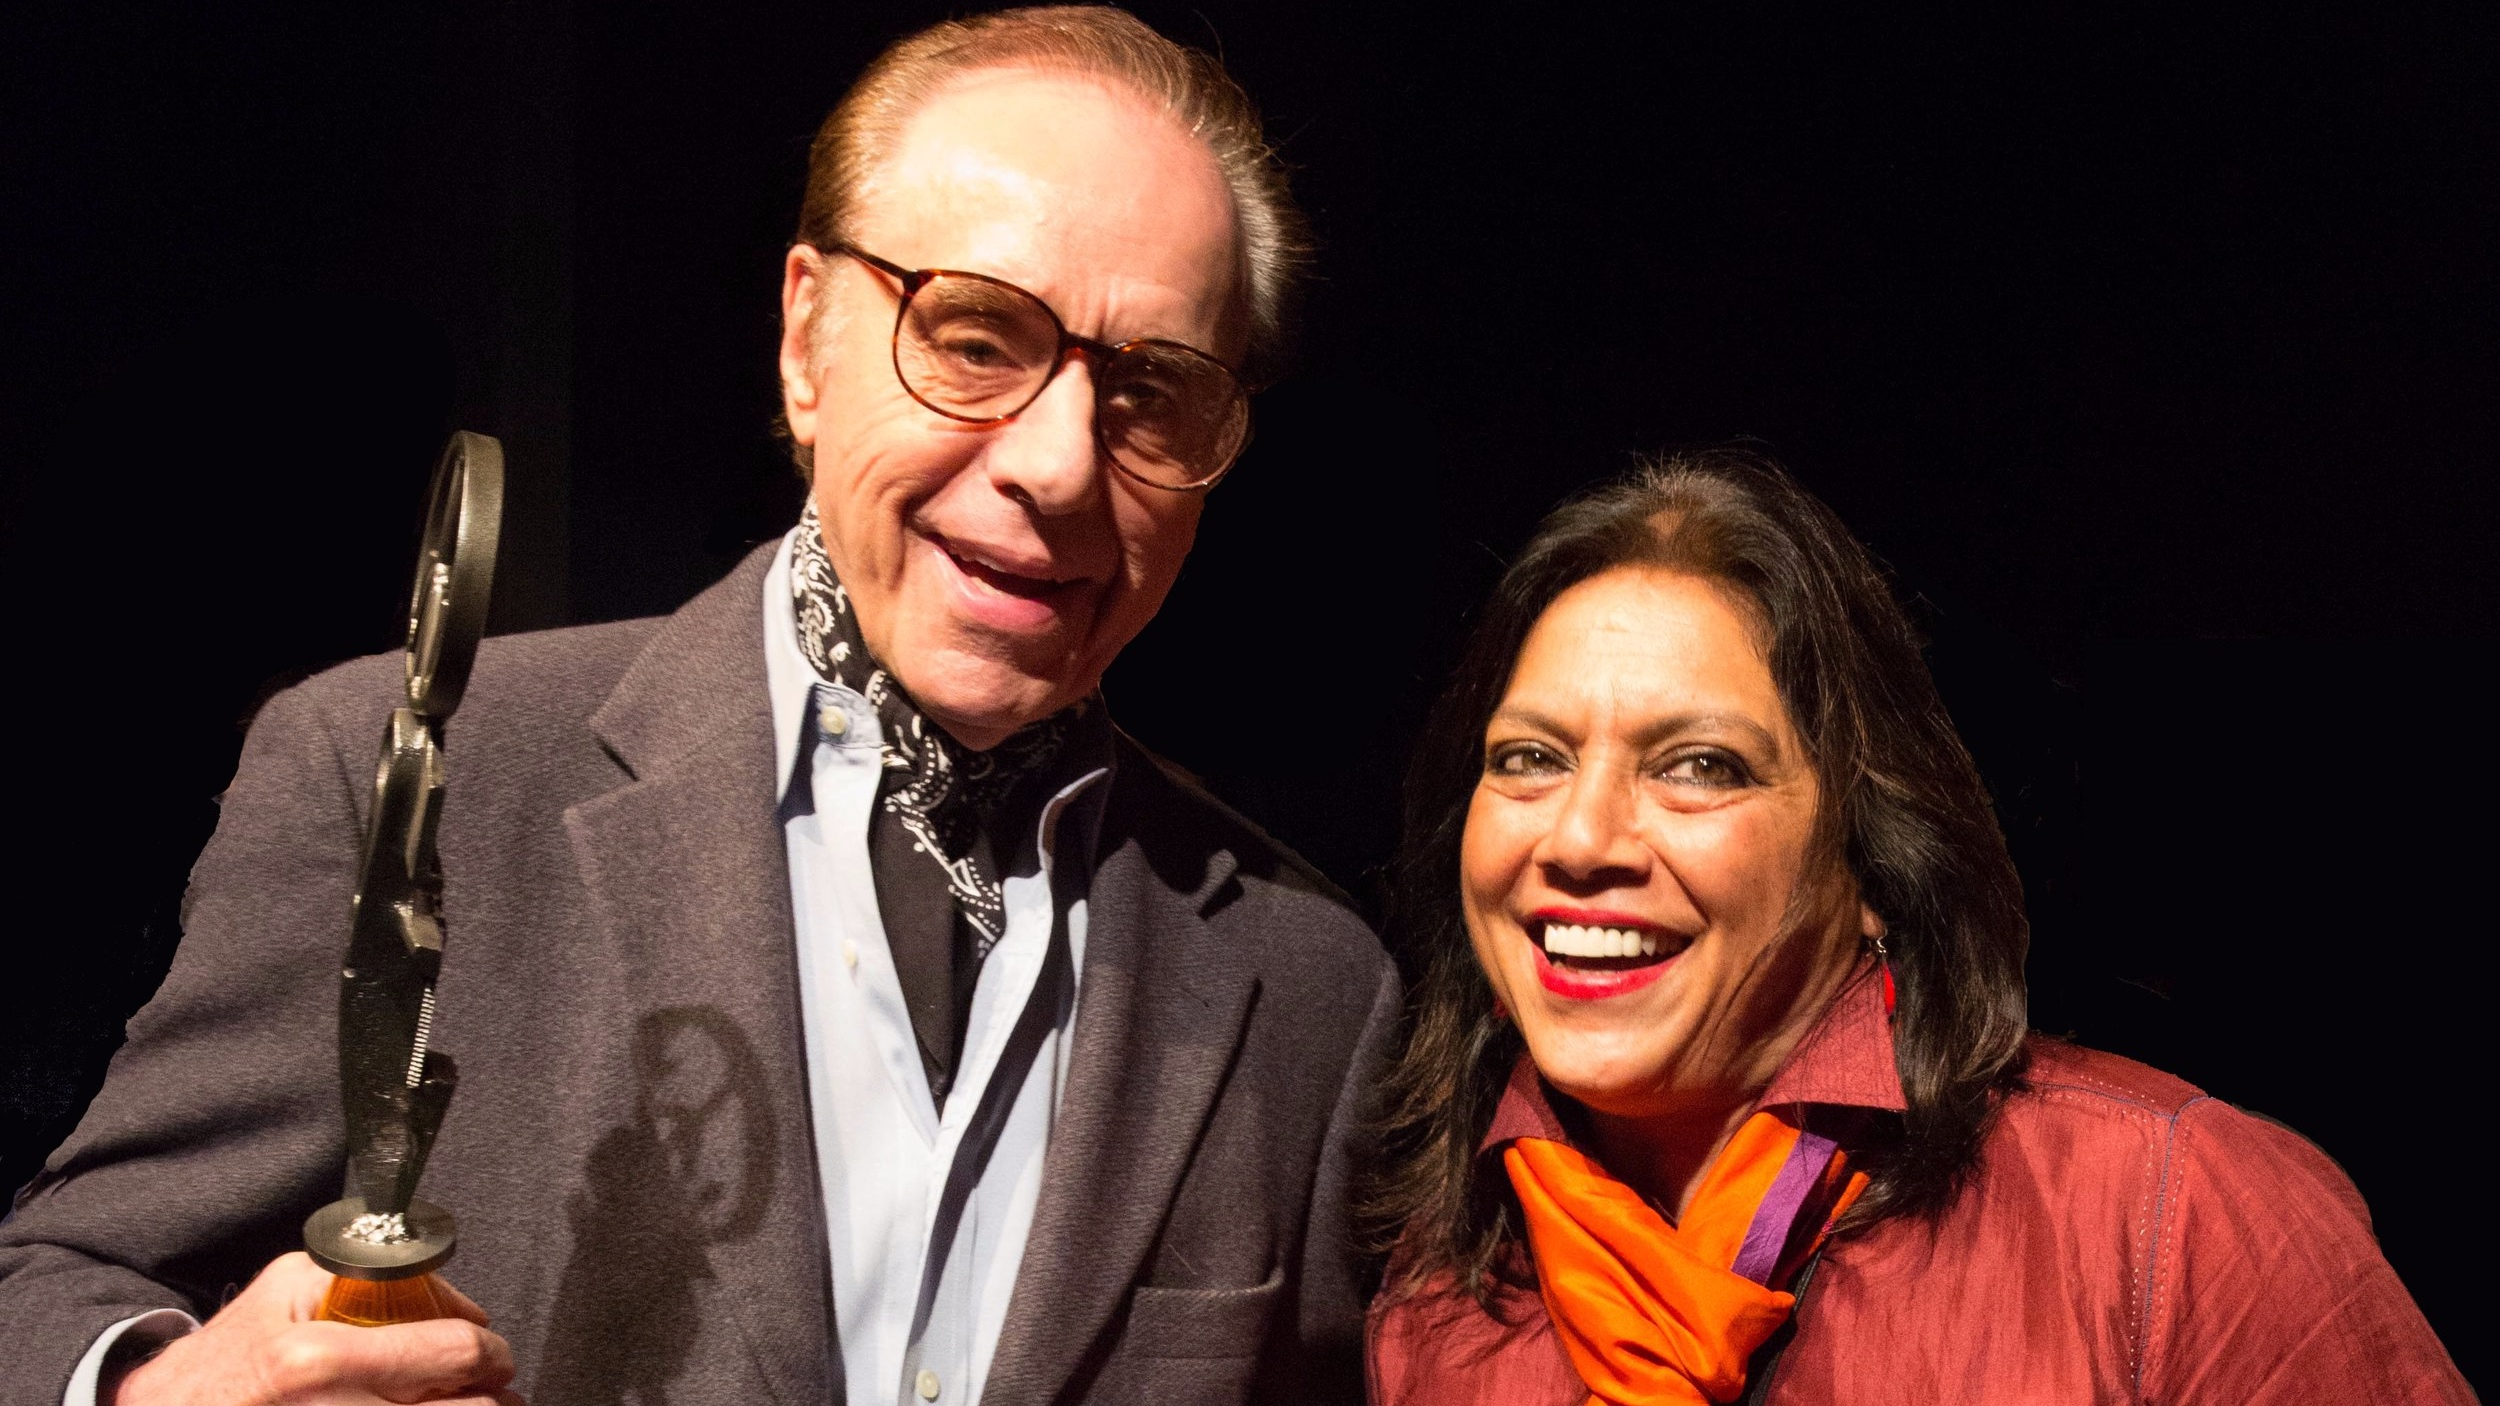 Honorary Maverick Award Recipient Peter Bogdanovich with Meera Gandhi Giving Back Award Recipient Mira Nair at the 2013 Woodstock Film Festival.